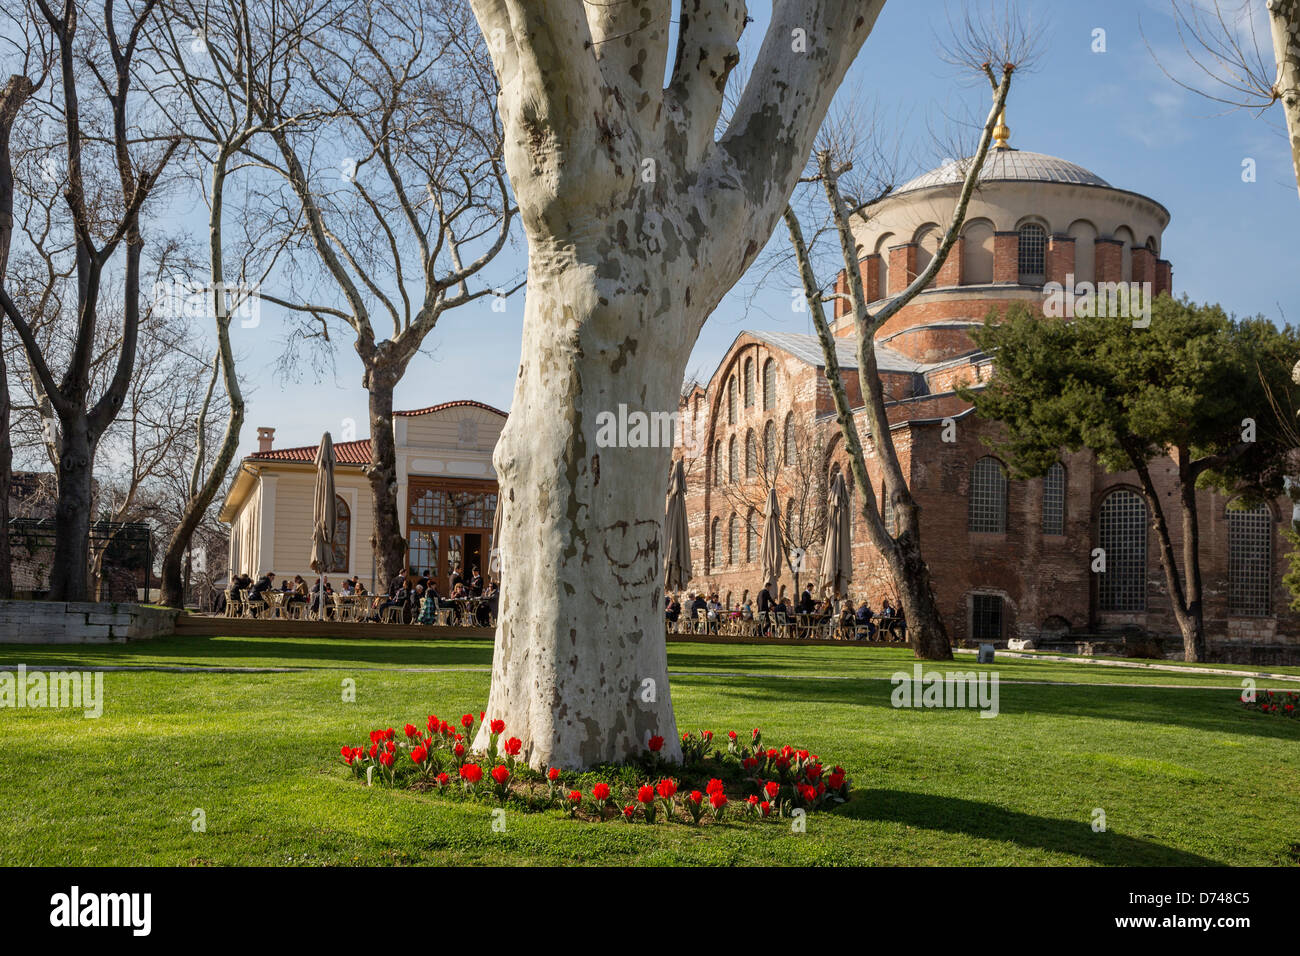 Garden in the first courtyard of Topkapi palace, Istanbul, Turkey. In the background the church of Hagia Eirene. - Stock Image